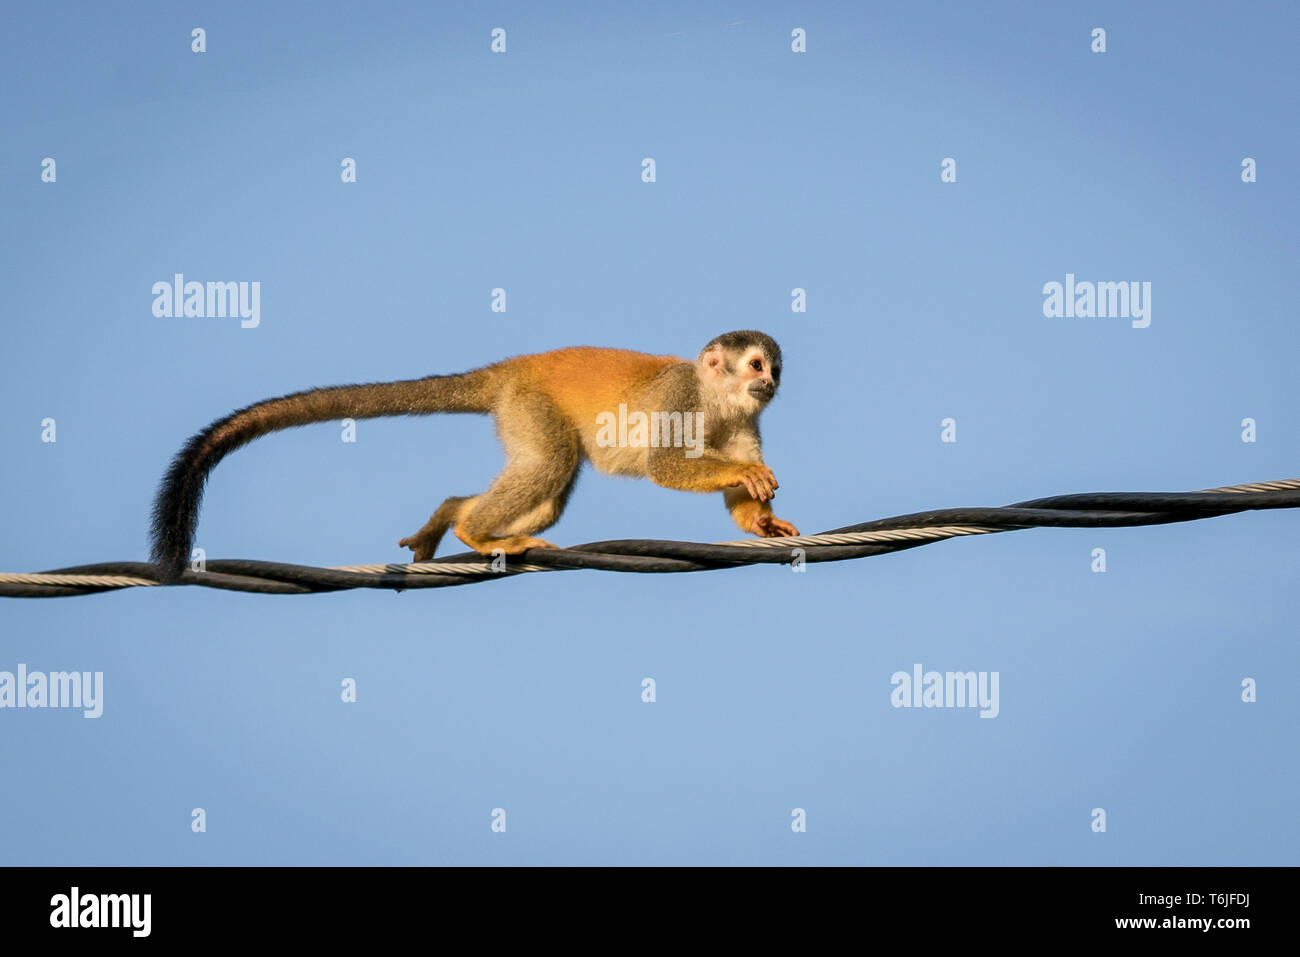 Squirrel monkey crossing the road on a wire in Manuel Antonio, Costa Rica Stock Photo